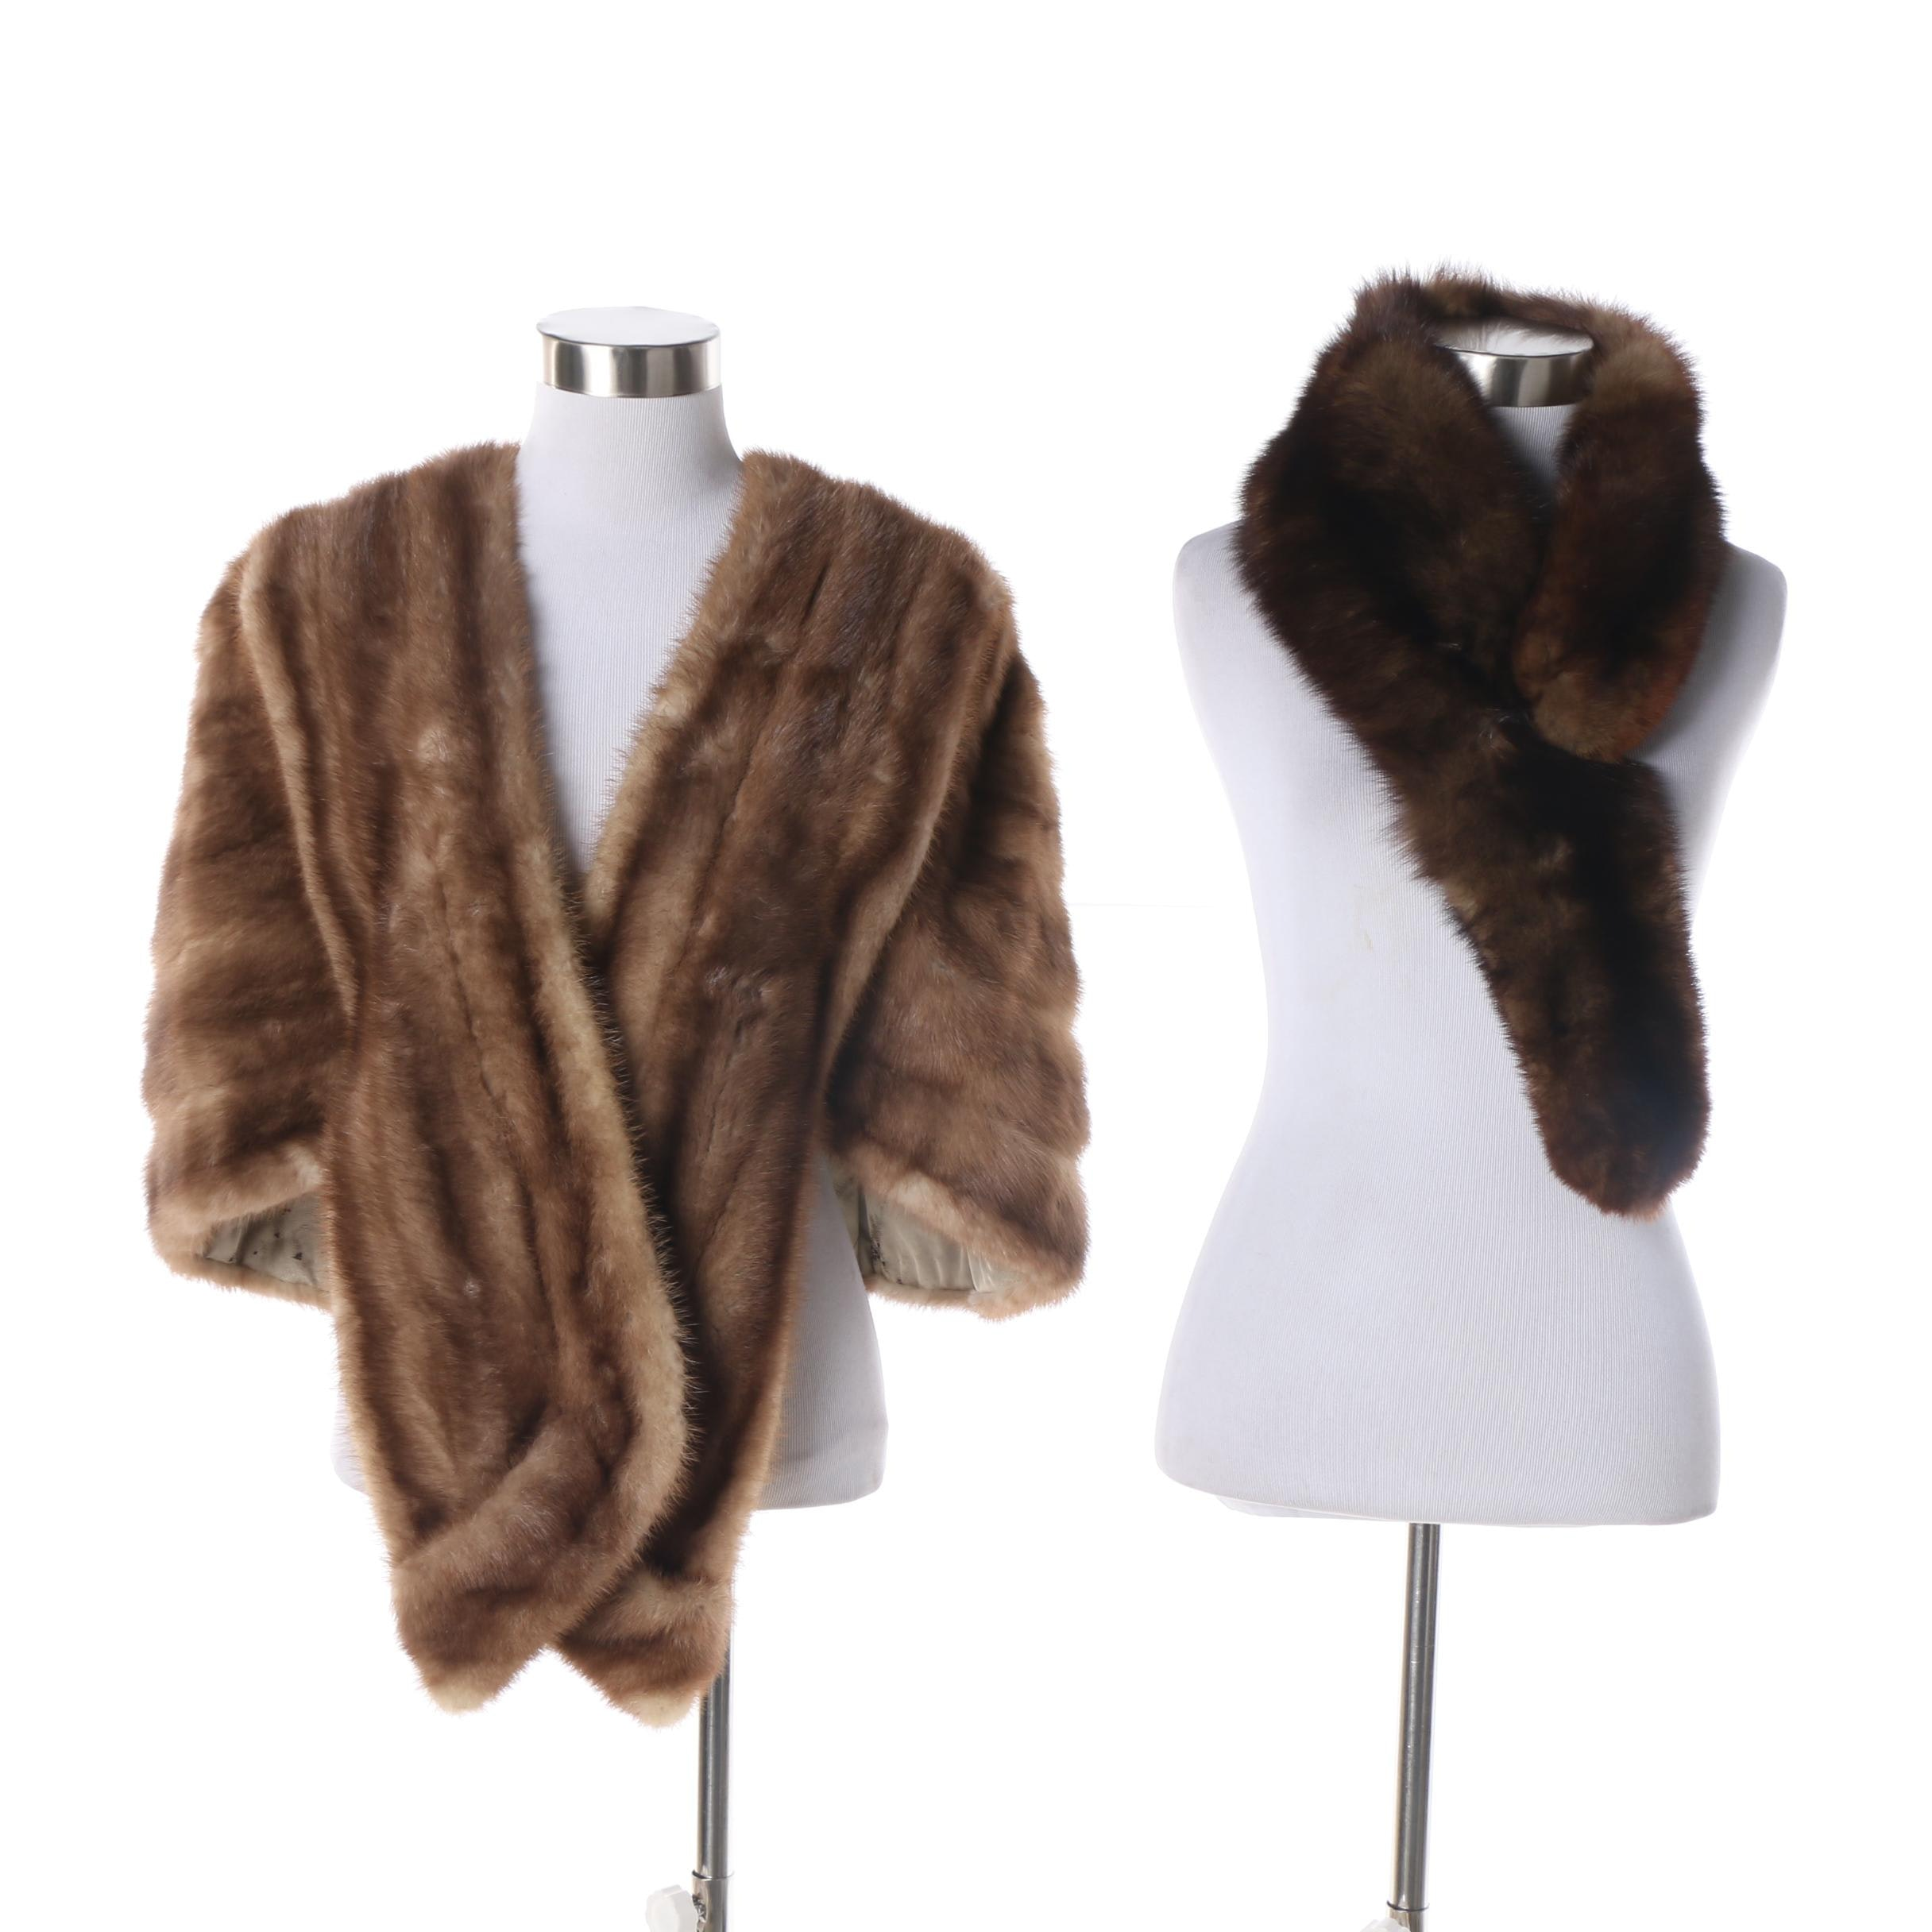 Vintage A. S. Rich Mink Fur Stole and Marten Fur Collar